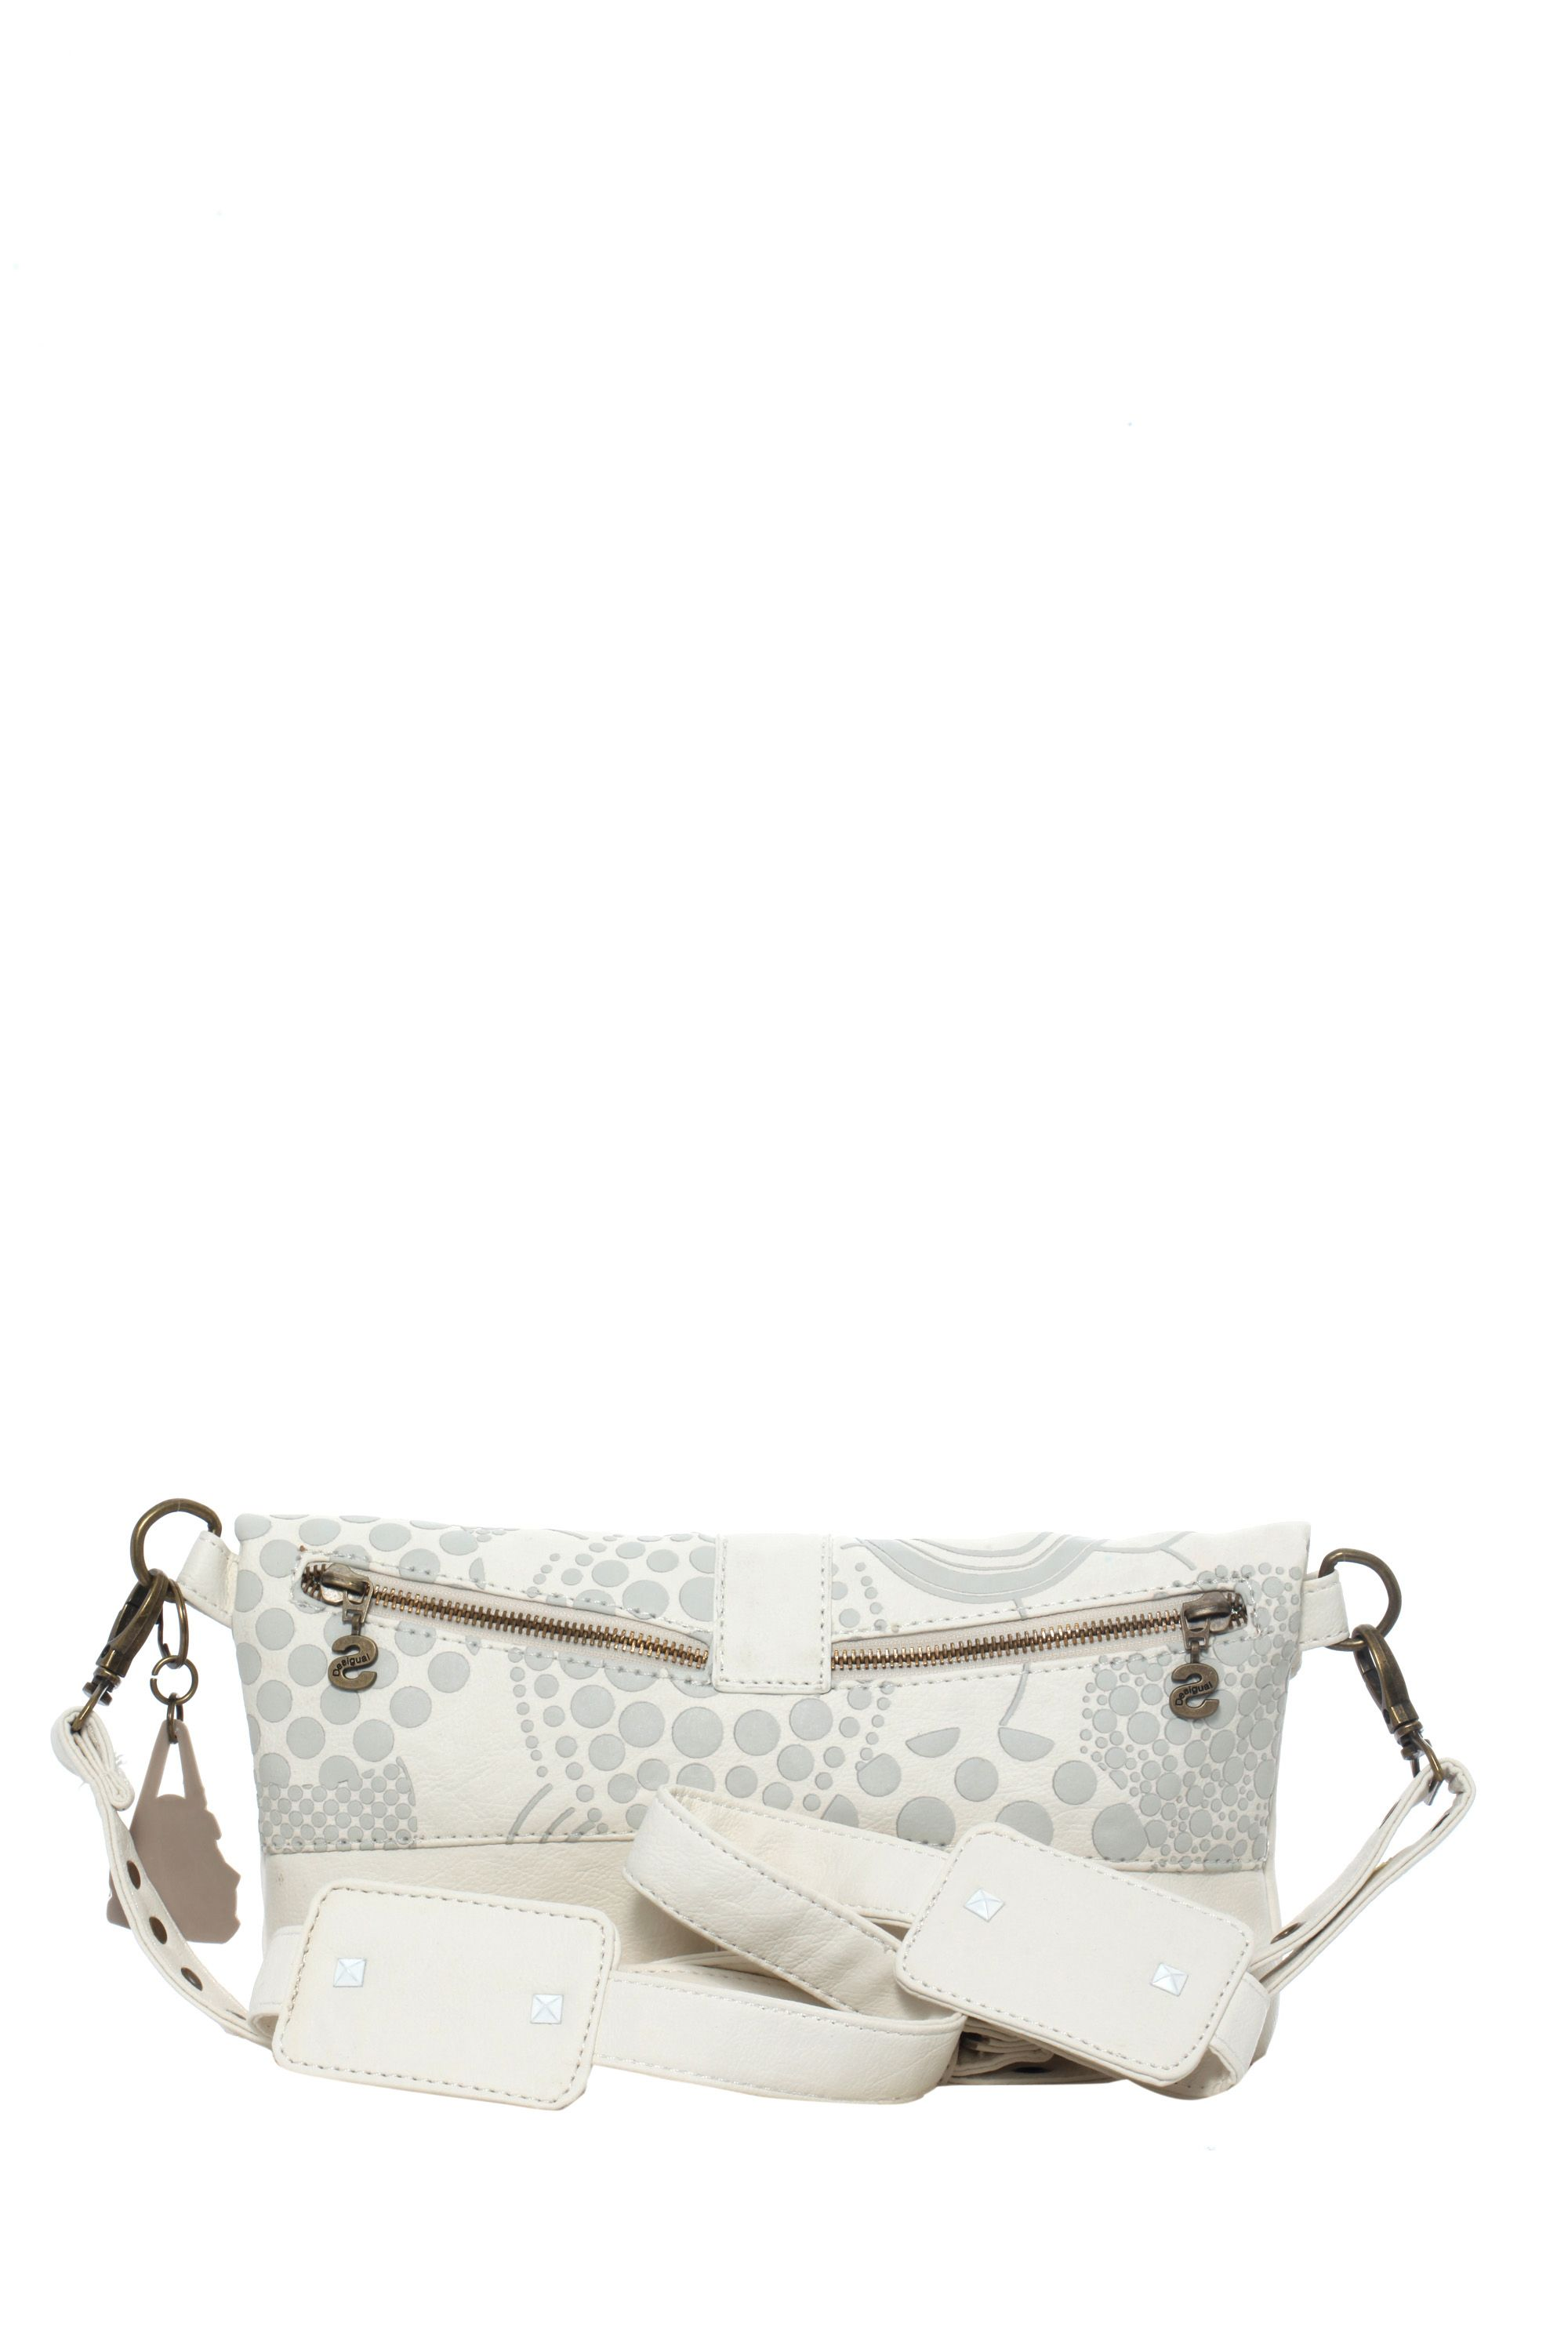 Bandolera white bag